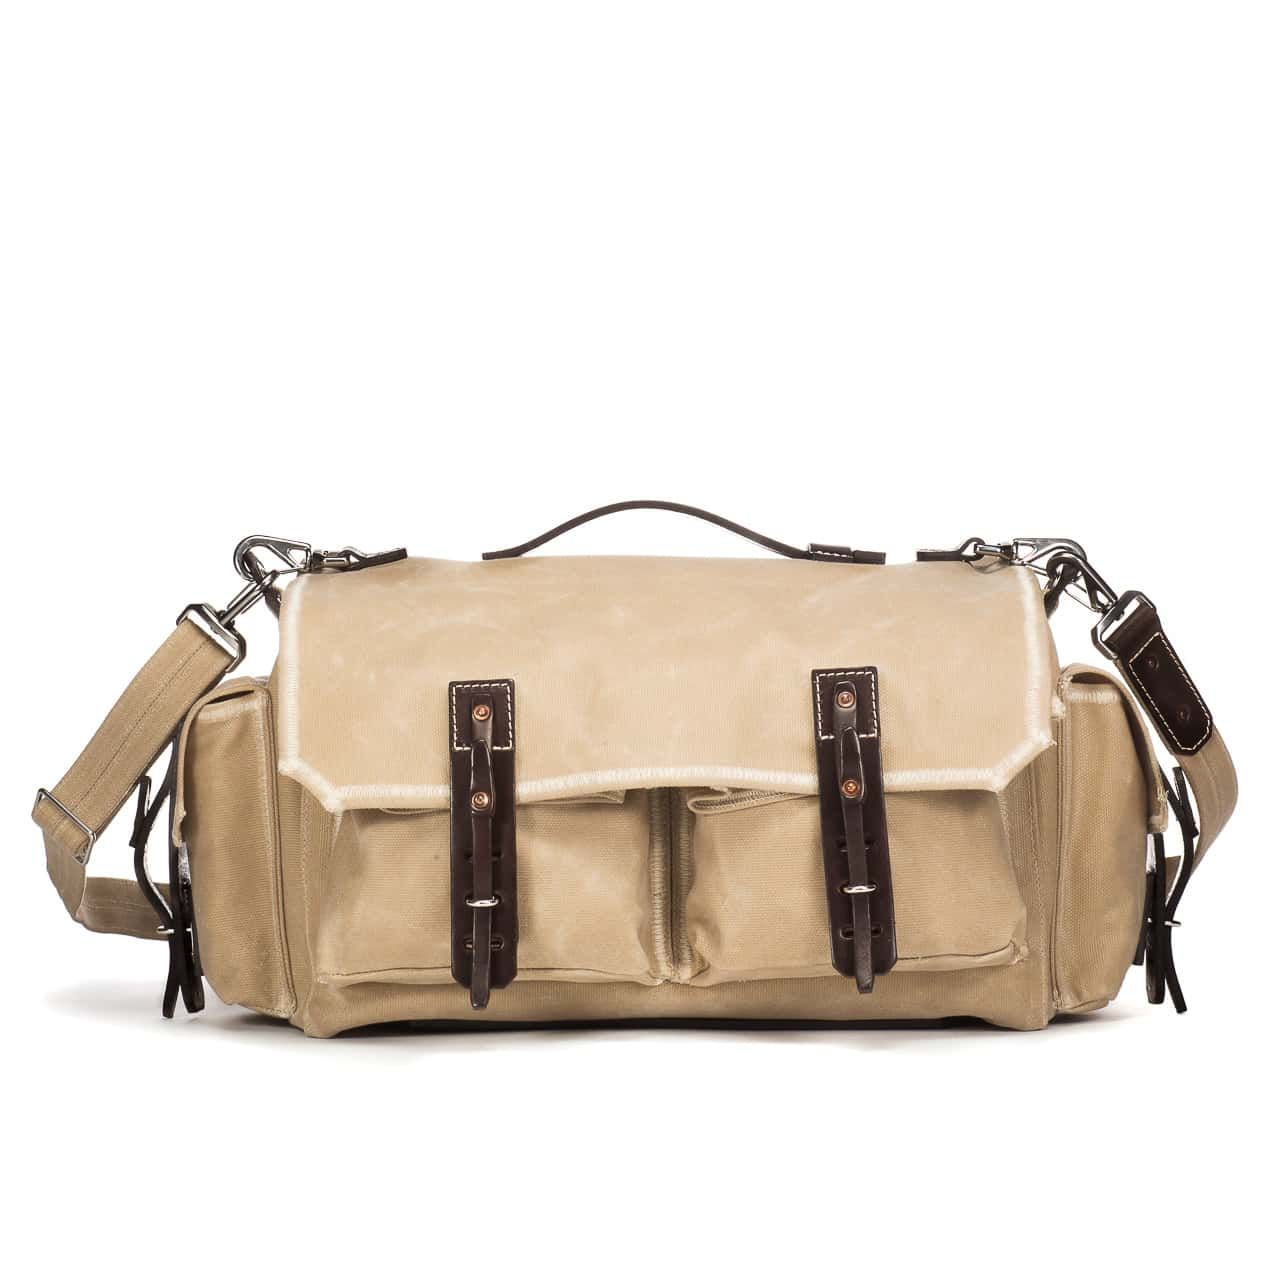 5 Pocket Duffel in Color Sand Front